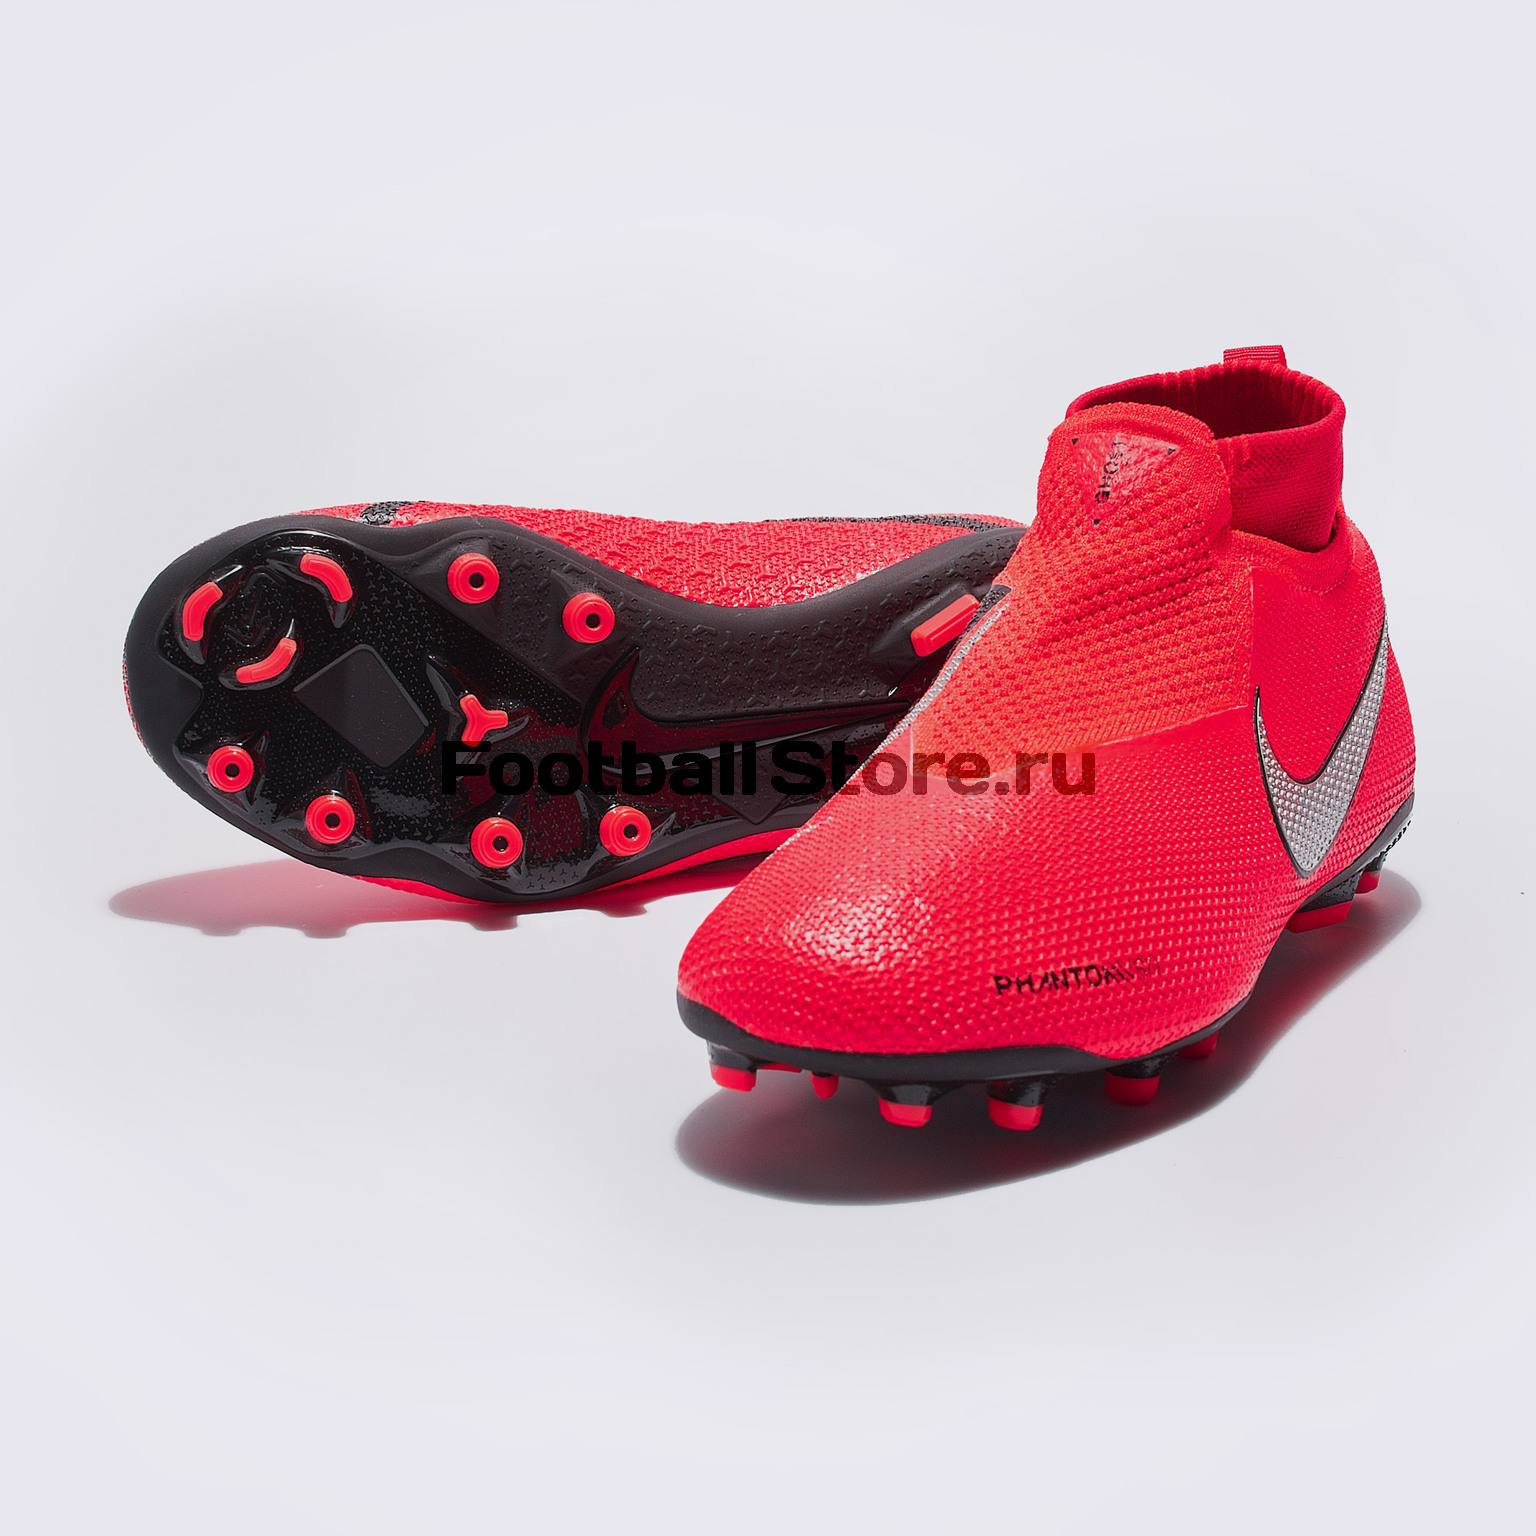 Бутсы детские Nike Phantom Vision Elite DF FG/MG AO3289-600 бутсы nike hypervenom 3 elite df fg aj3803 600